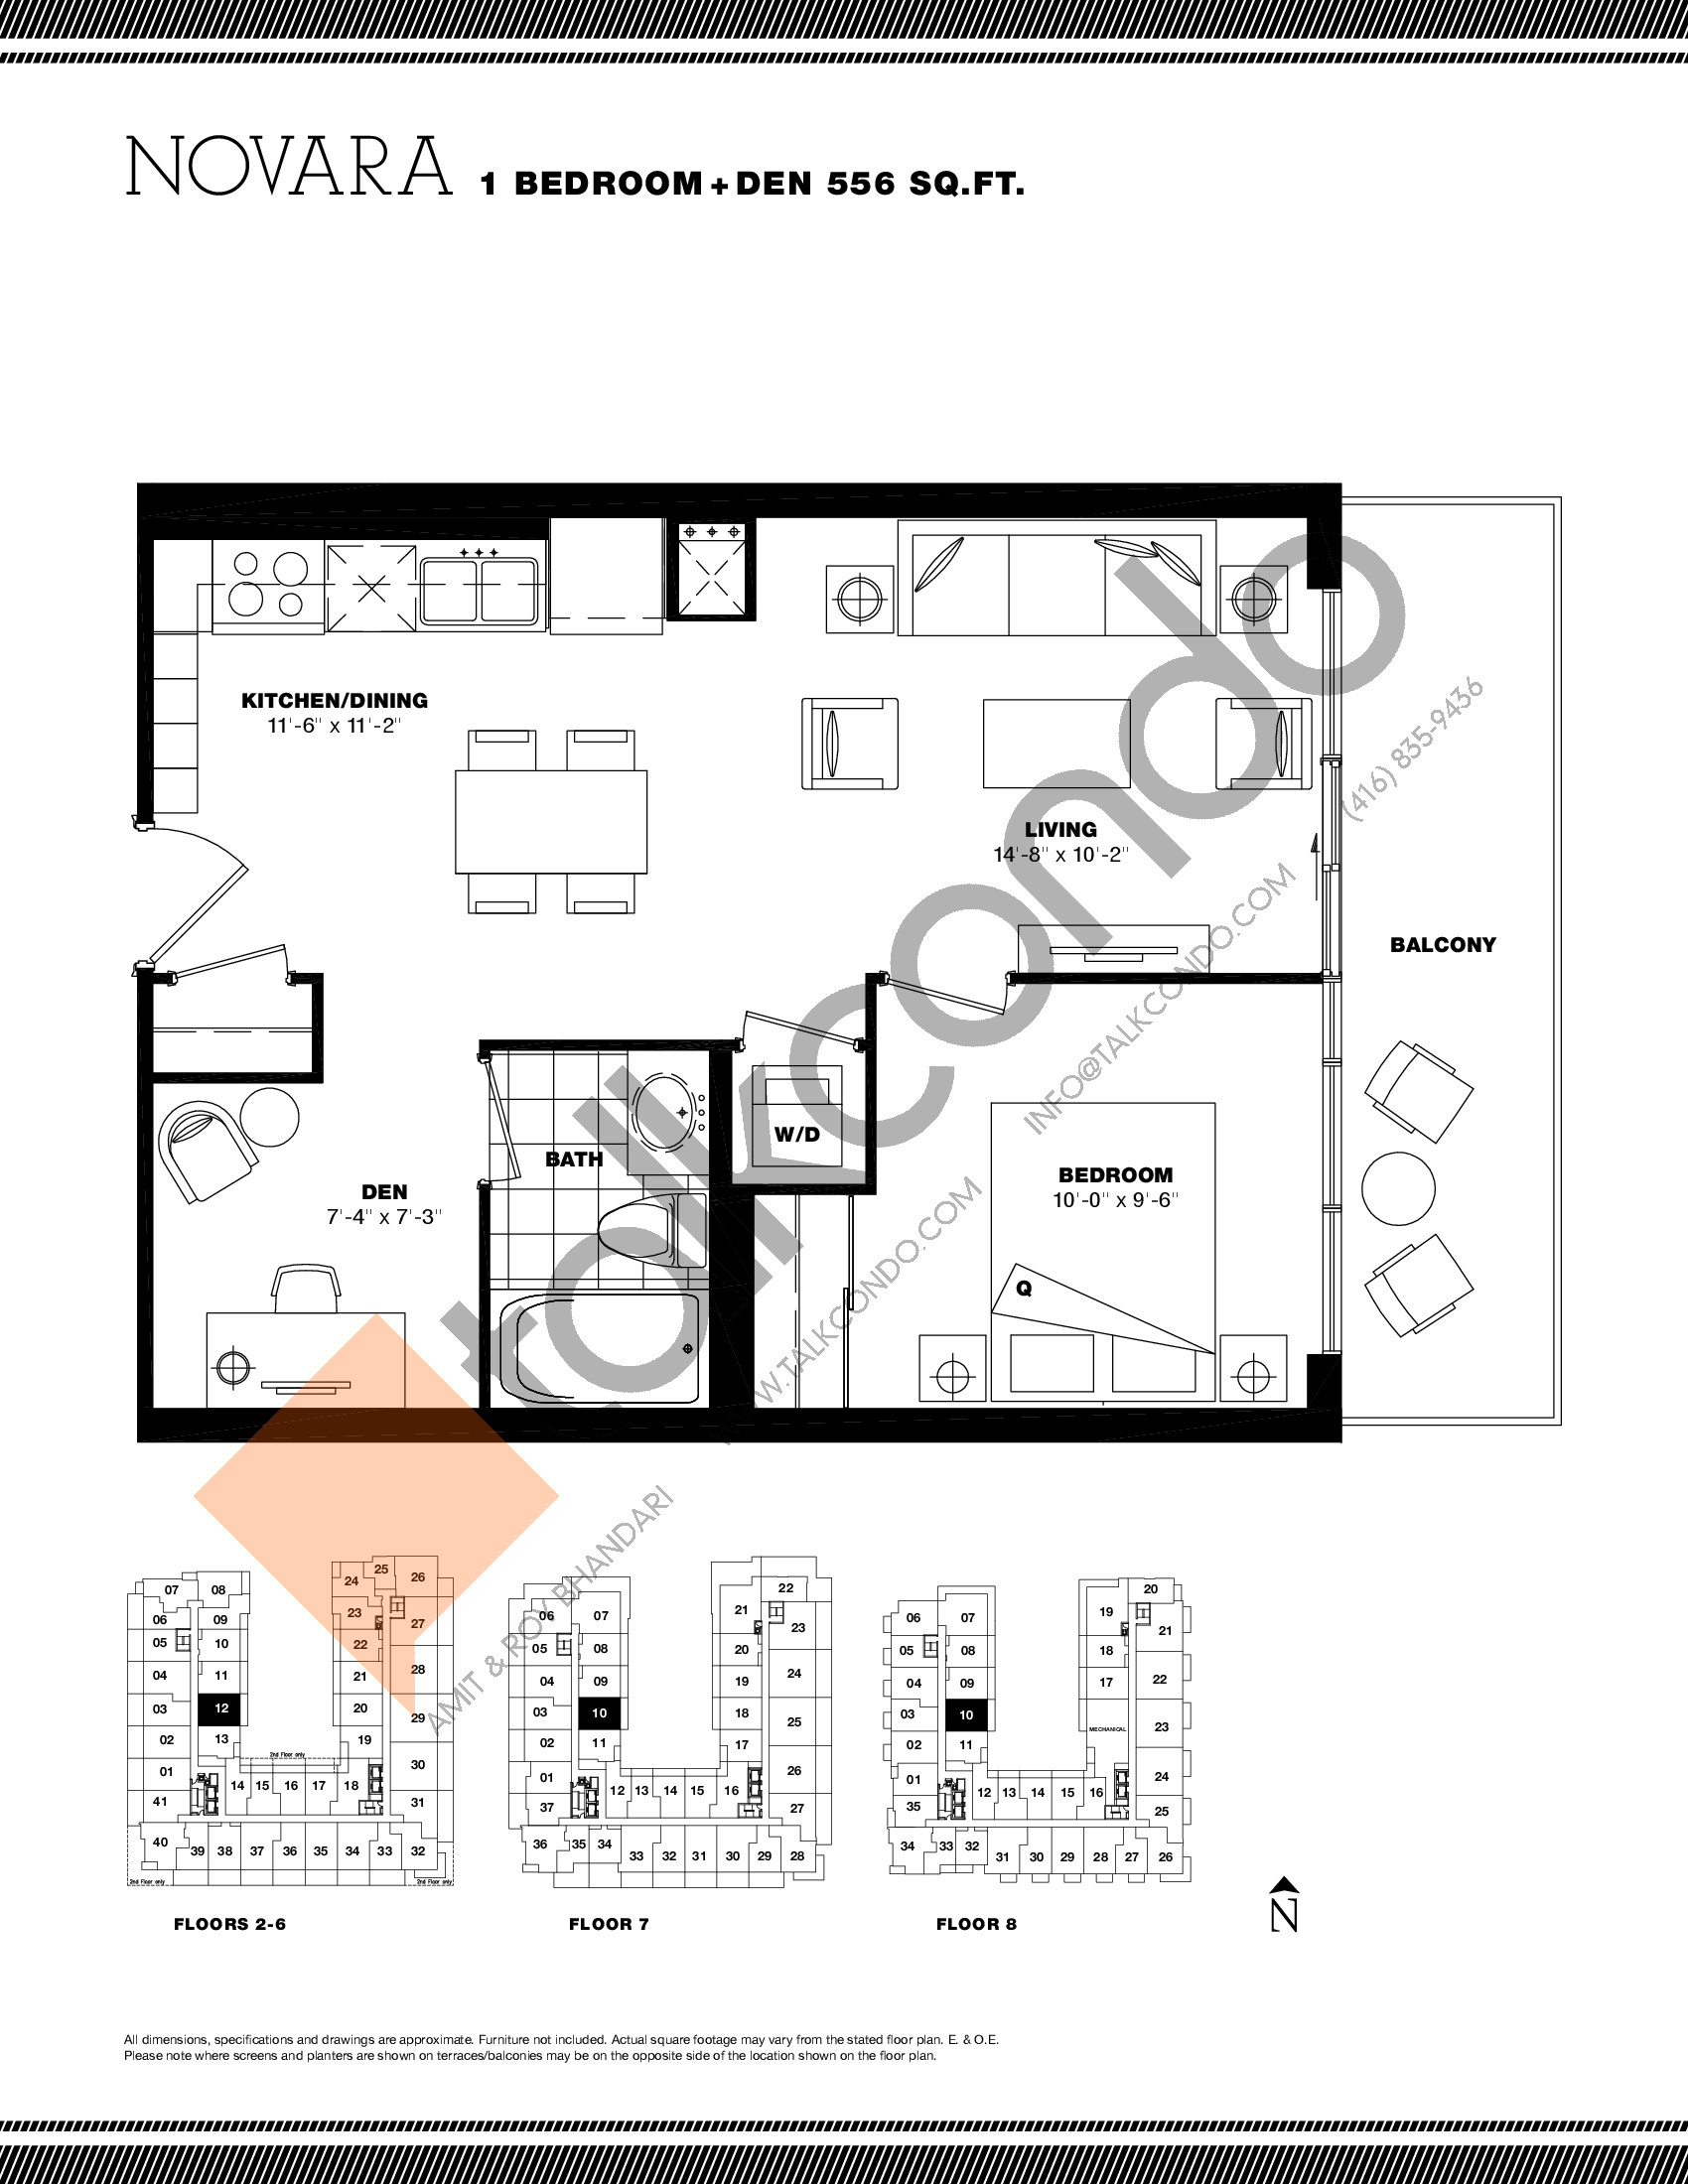 Novara Floor Plan at Residenze Palazzo at Treviso 3 Condos - 556 sq.ft